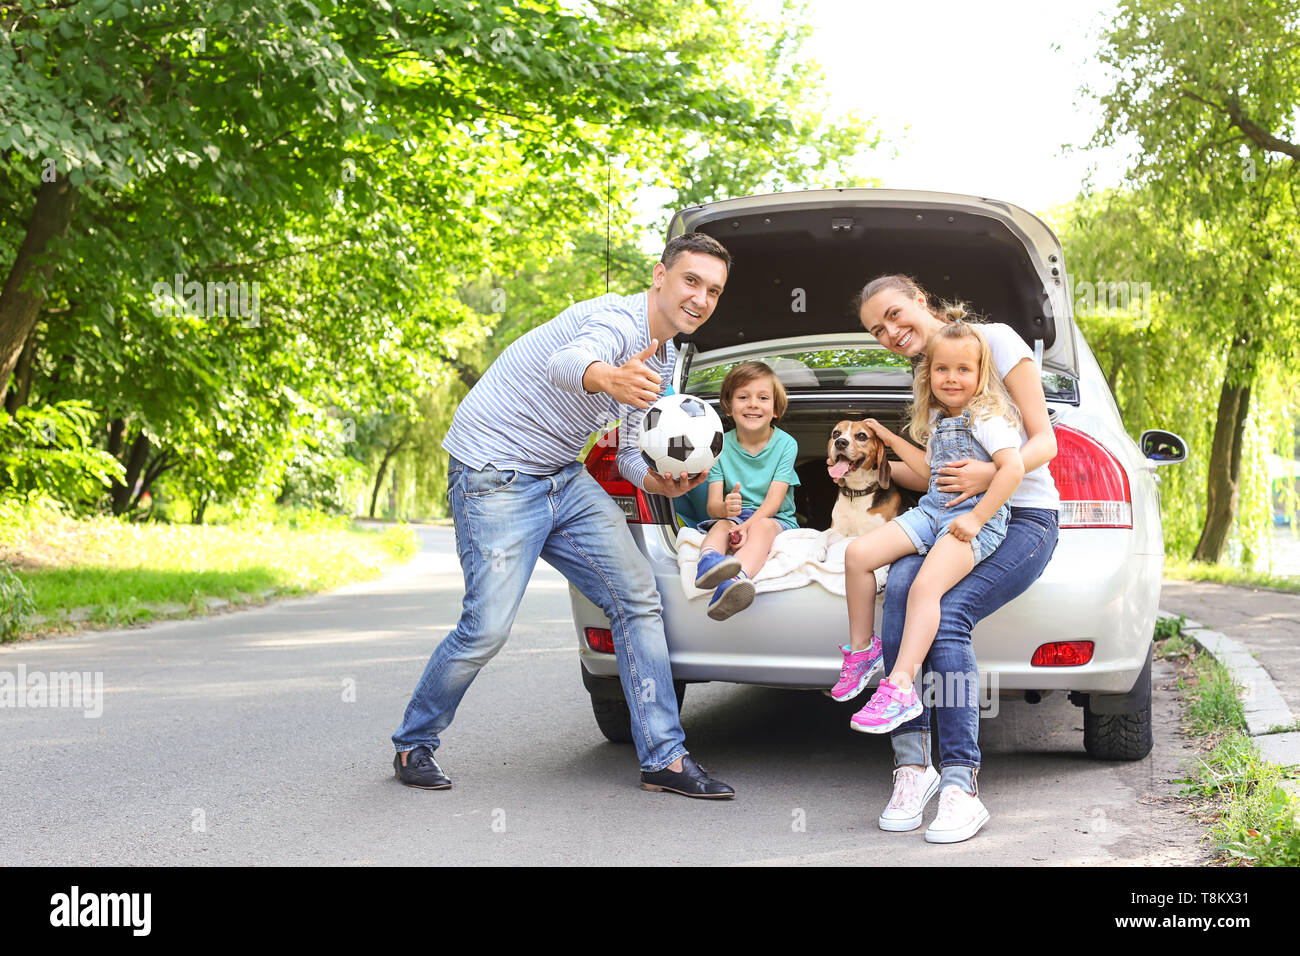 Happy family with cute dog near car outdoors - Stock Image